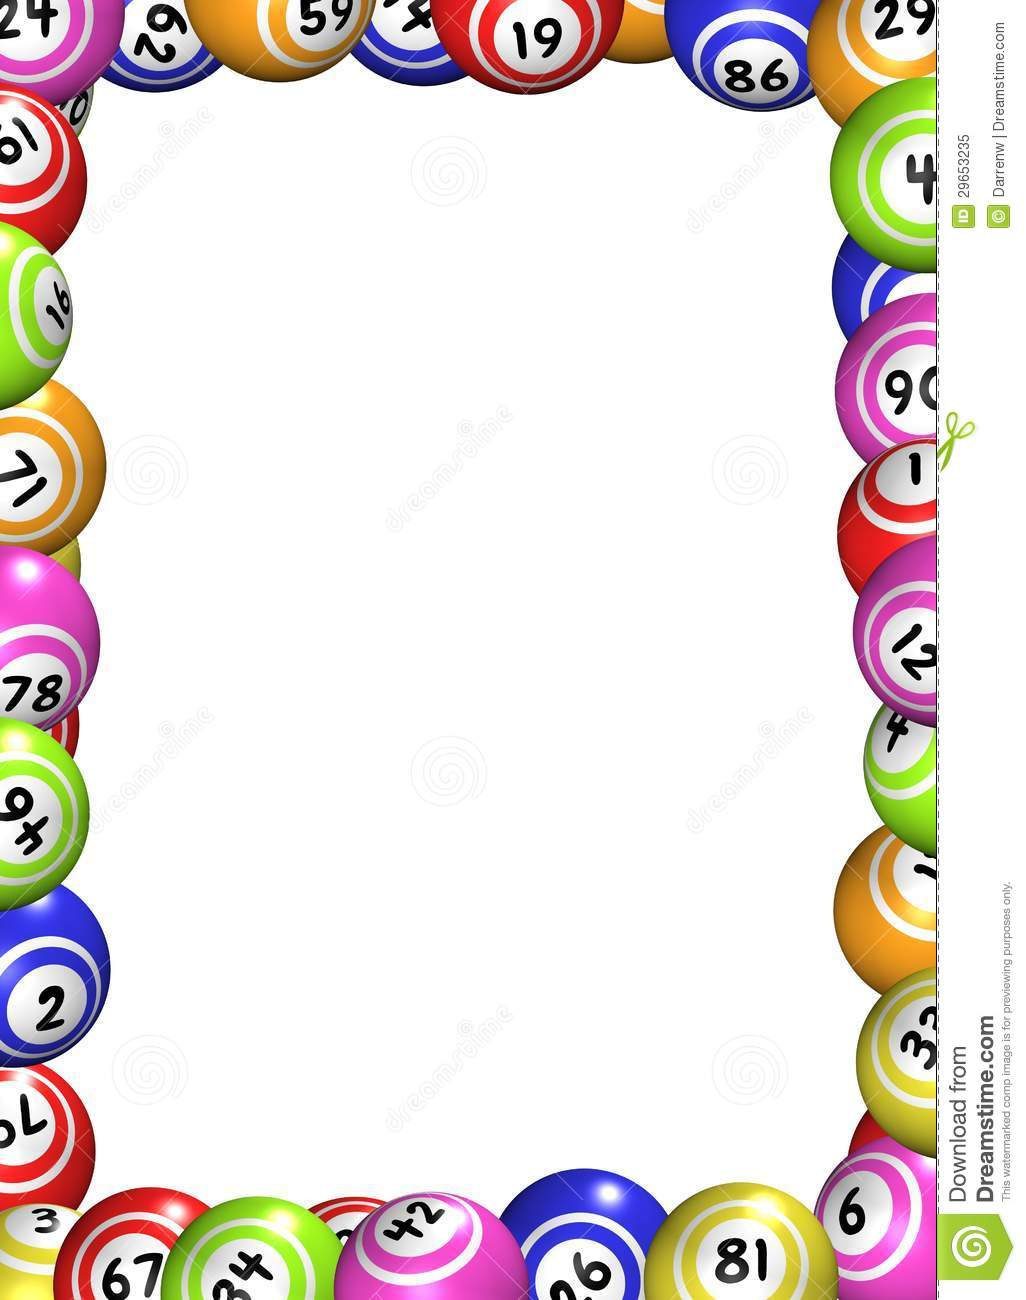 Bingo Balls Frame Royalty Free Stock Photo Image 29653235